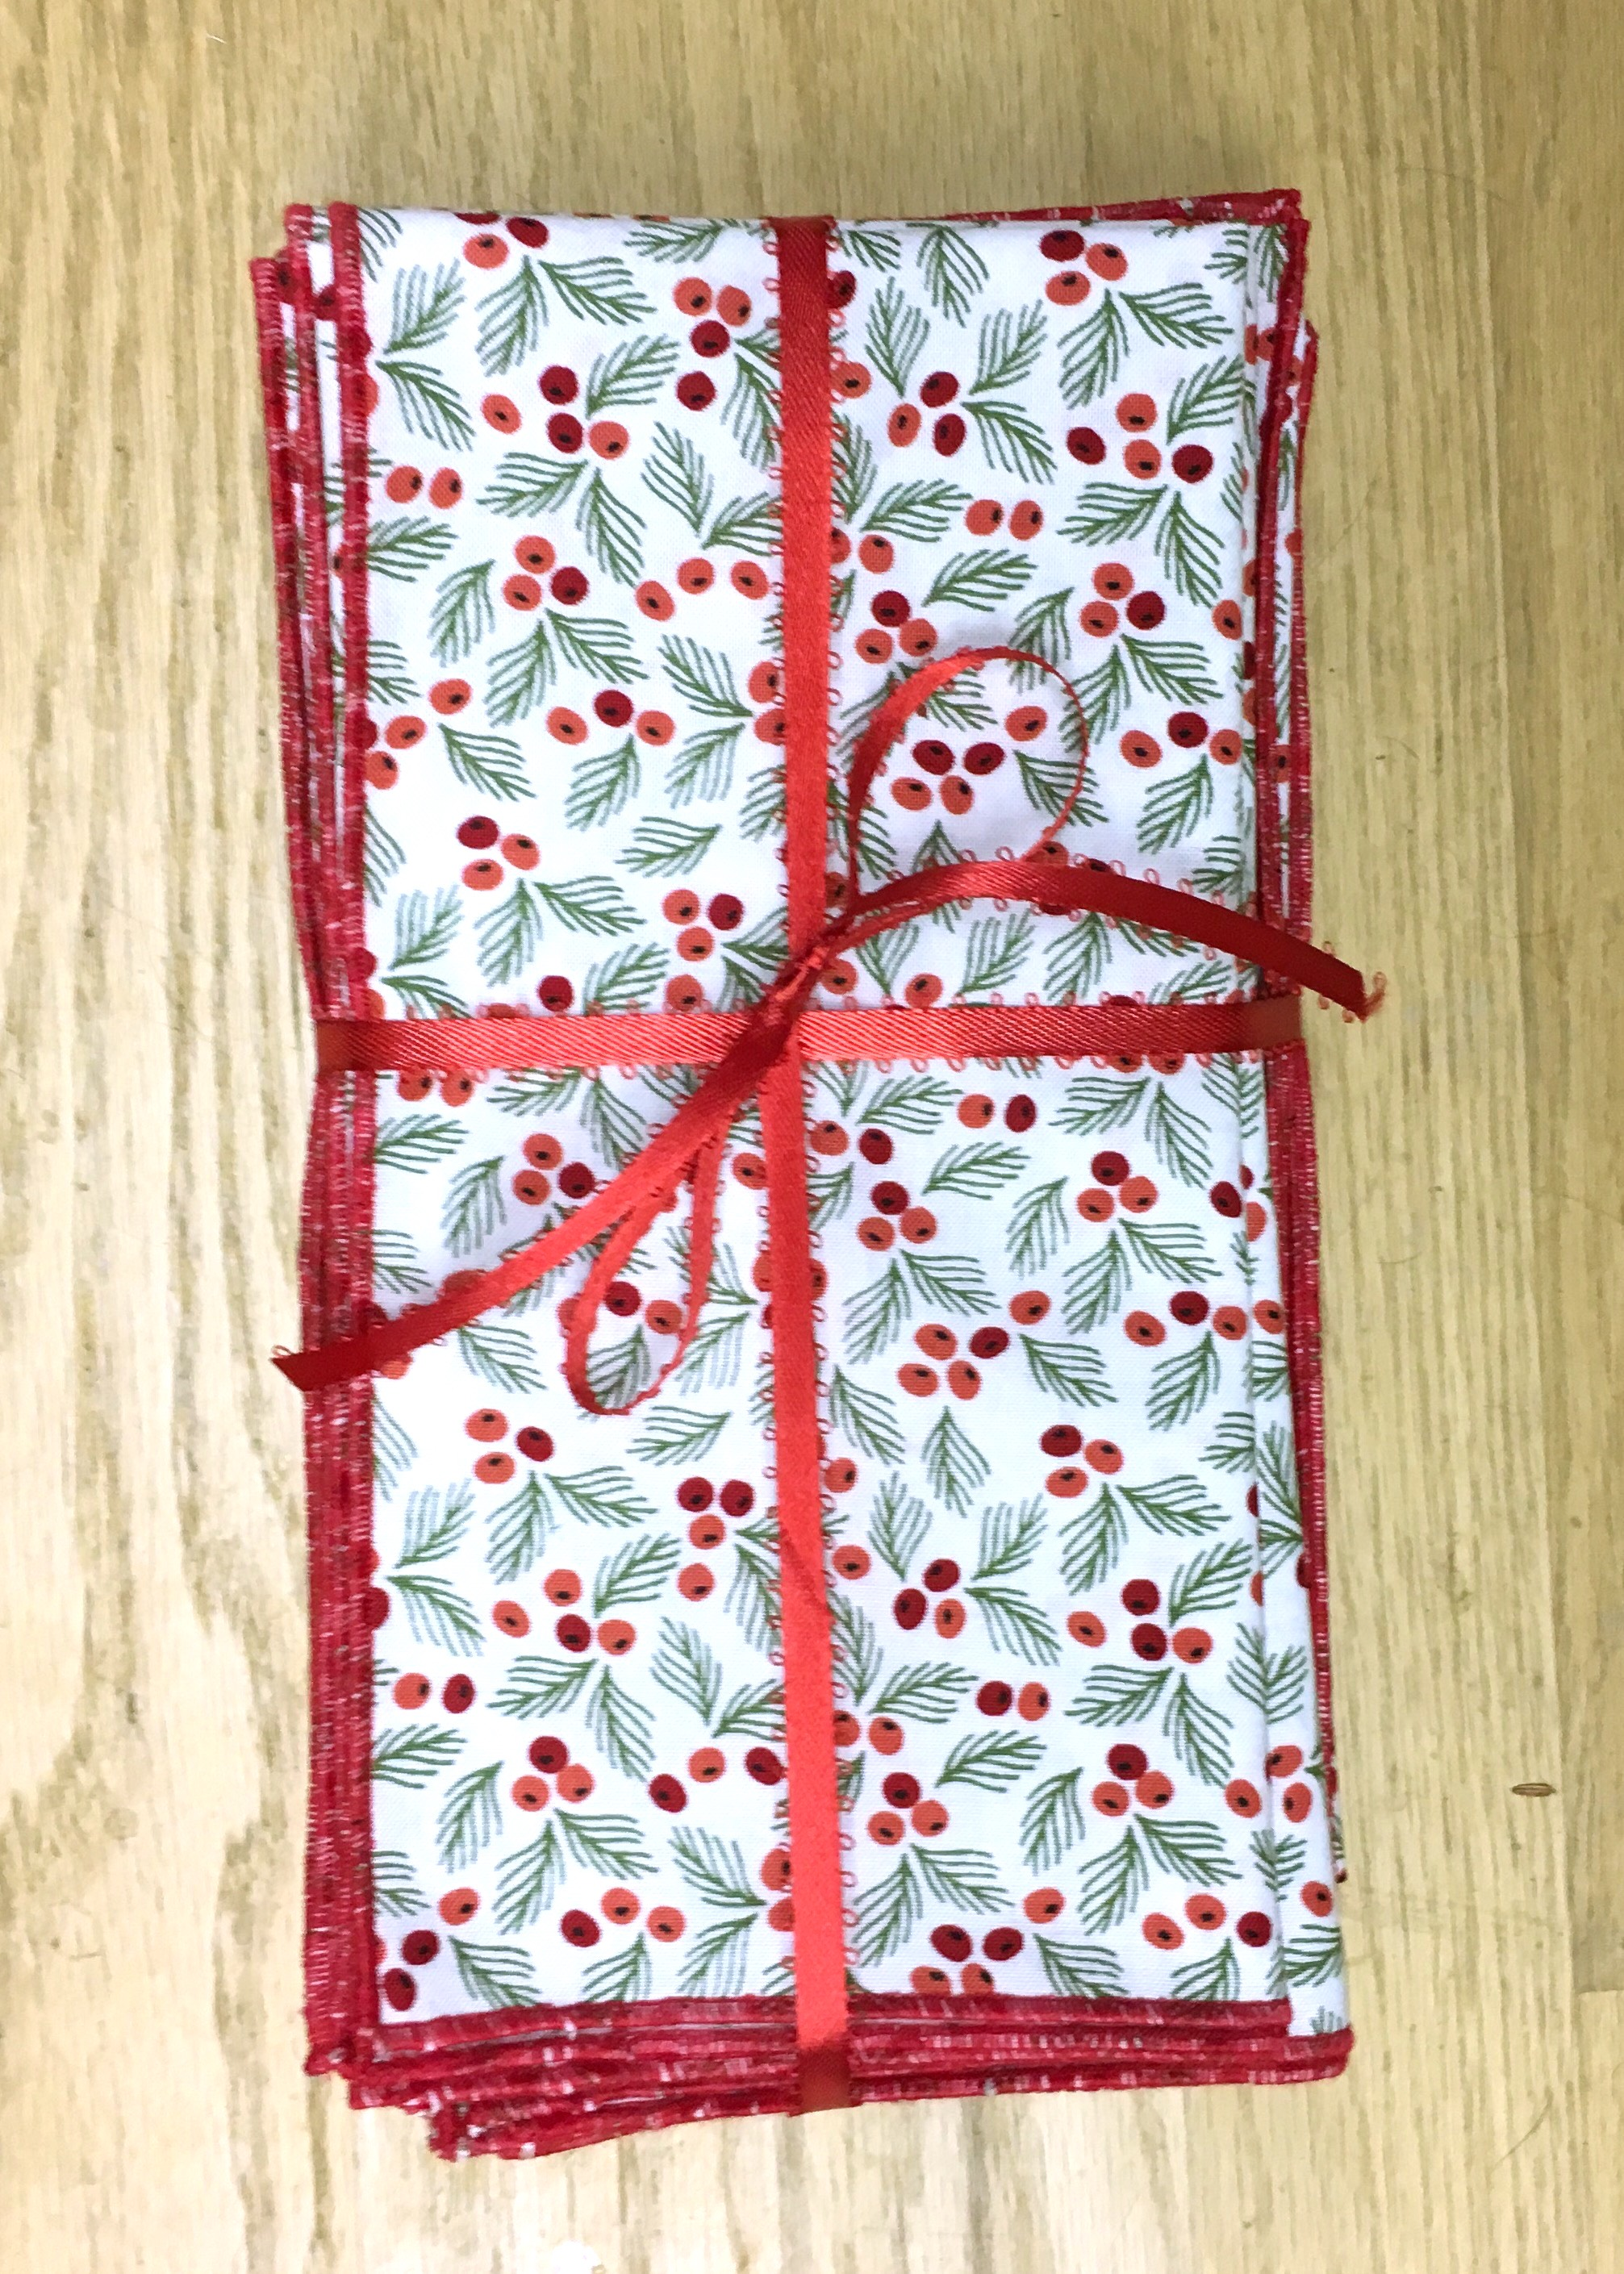 Quick-Sew Cloth Holiday Table Napkins,  17 1/2 x 17 1/2 inches, finished